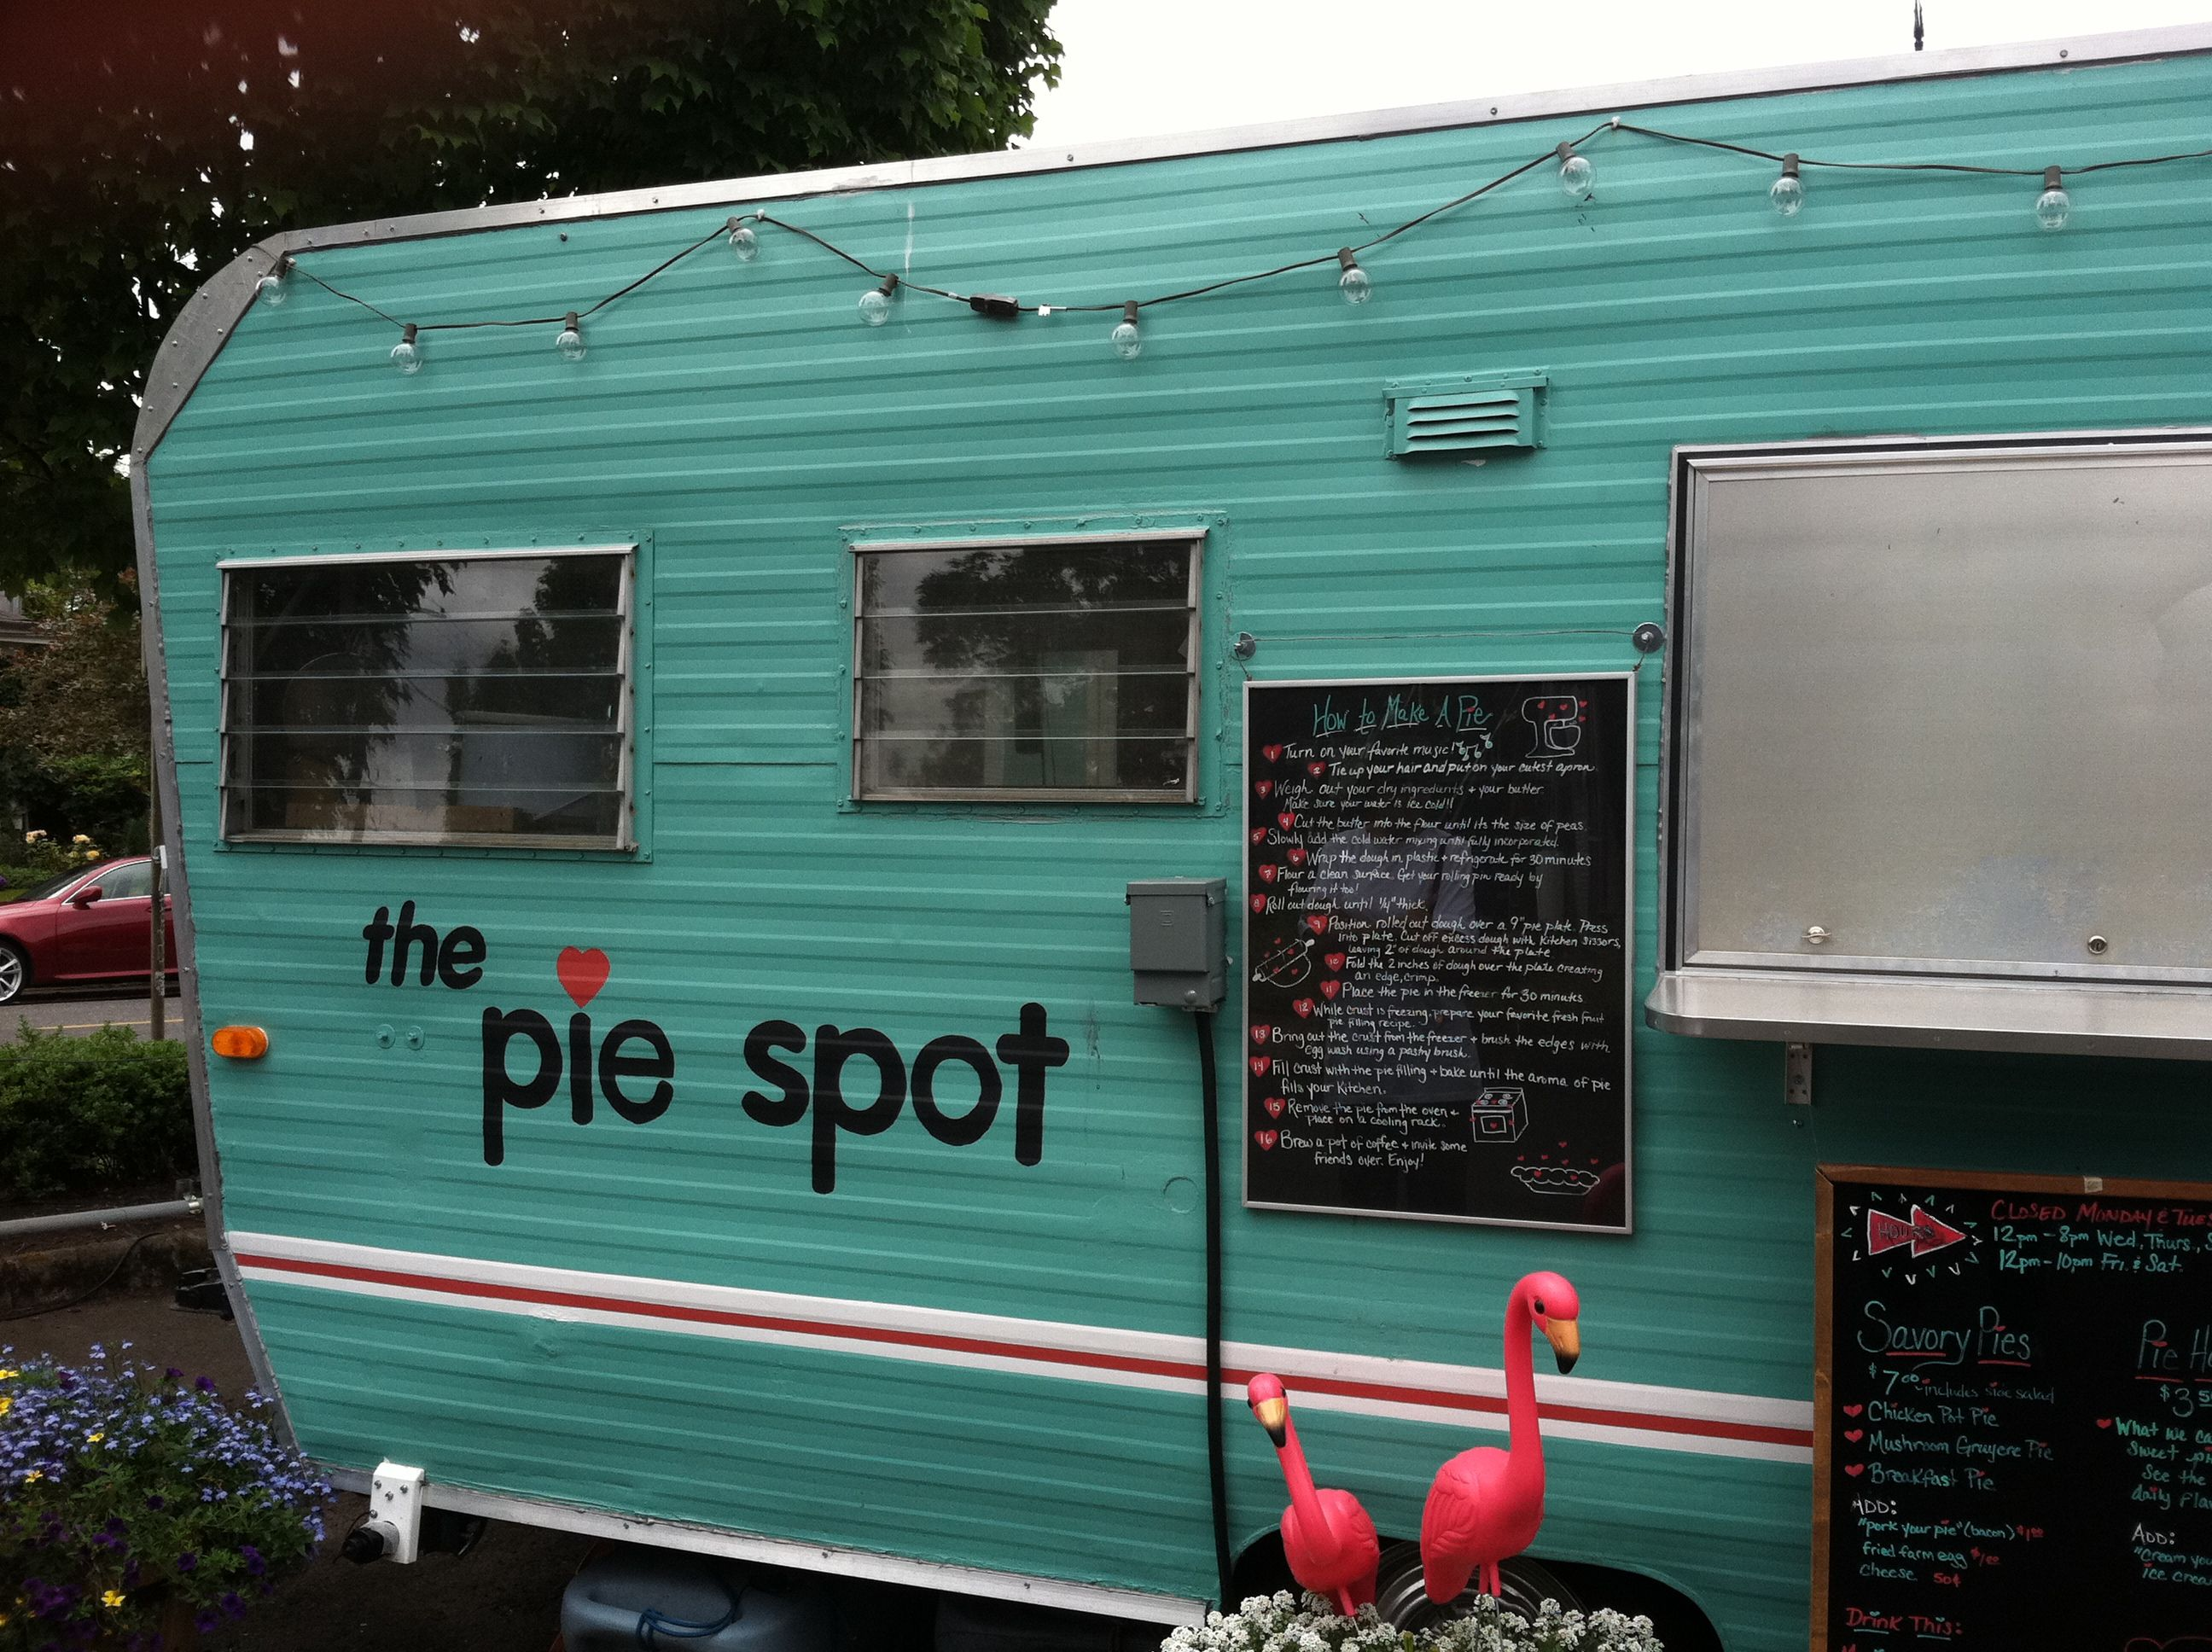 One of hundreds of food trucks in portland food truck